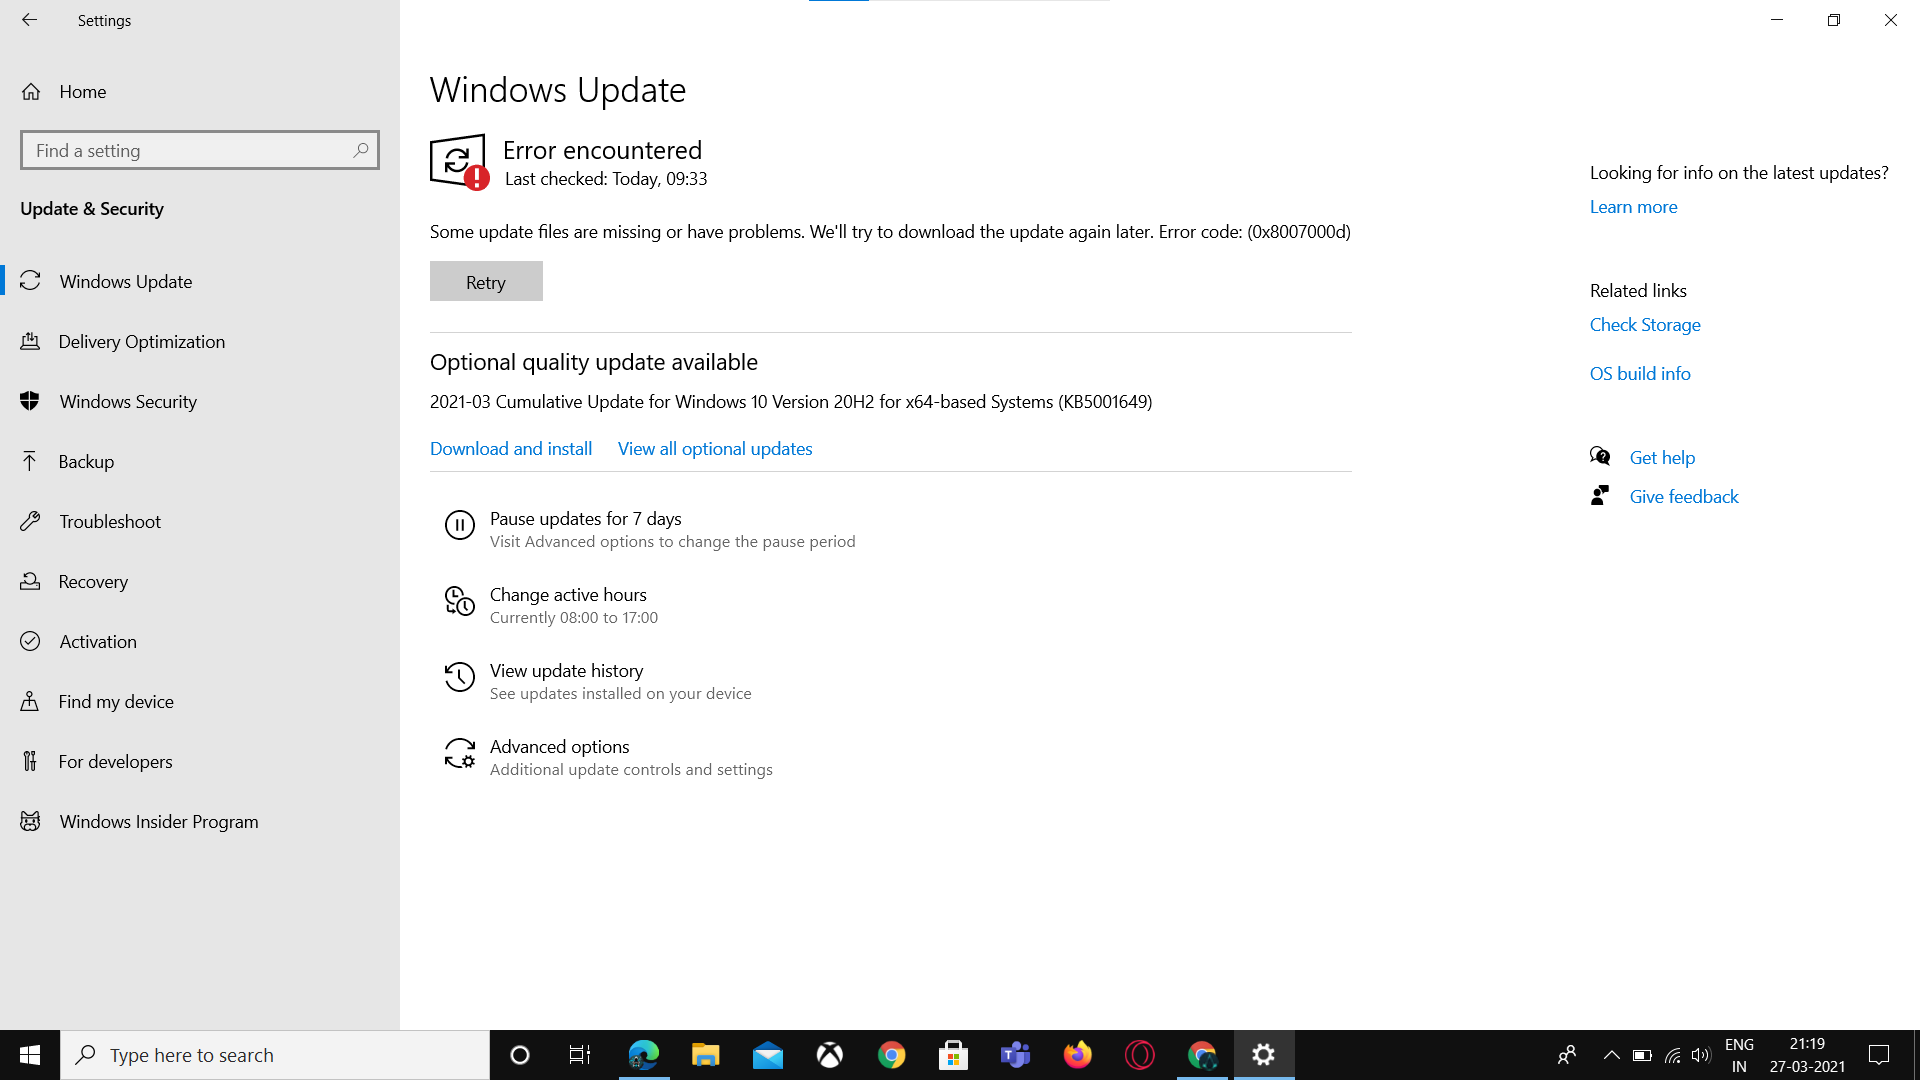 2021-03 Cumulative Update for Windows 10 Version 20H2 for x64-based Systems KB5000802 364b1b49-17ed-444a-9ba0-905d5275b784?upload=true.png